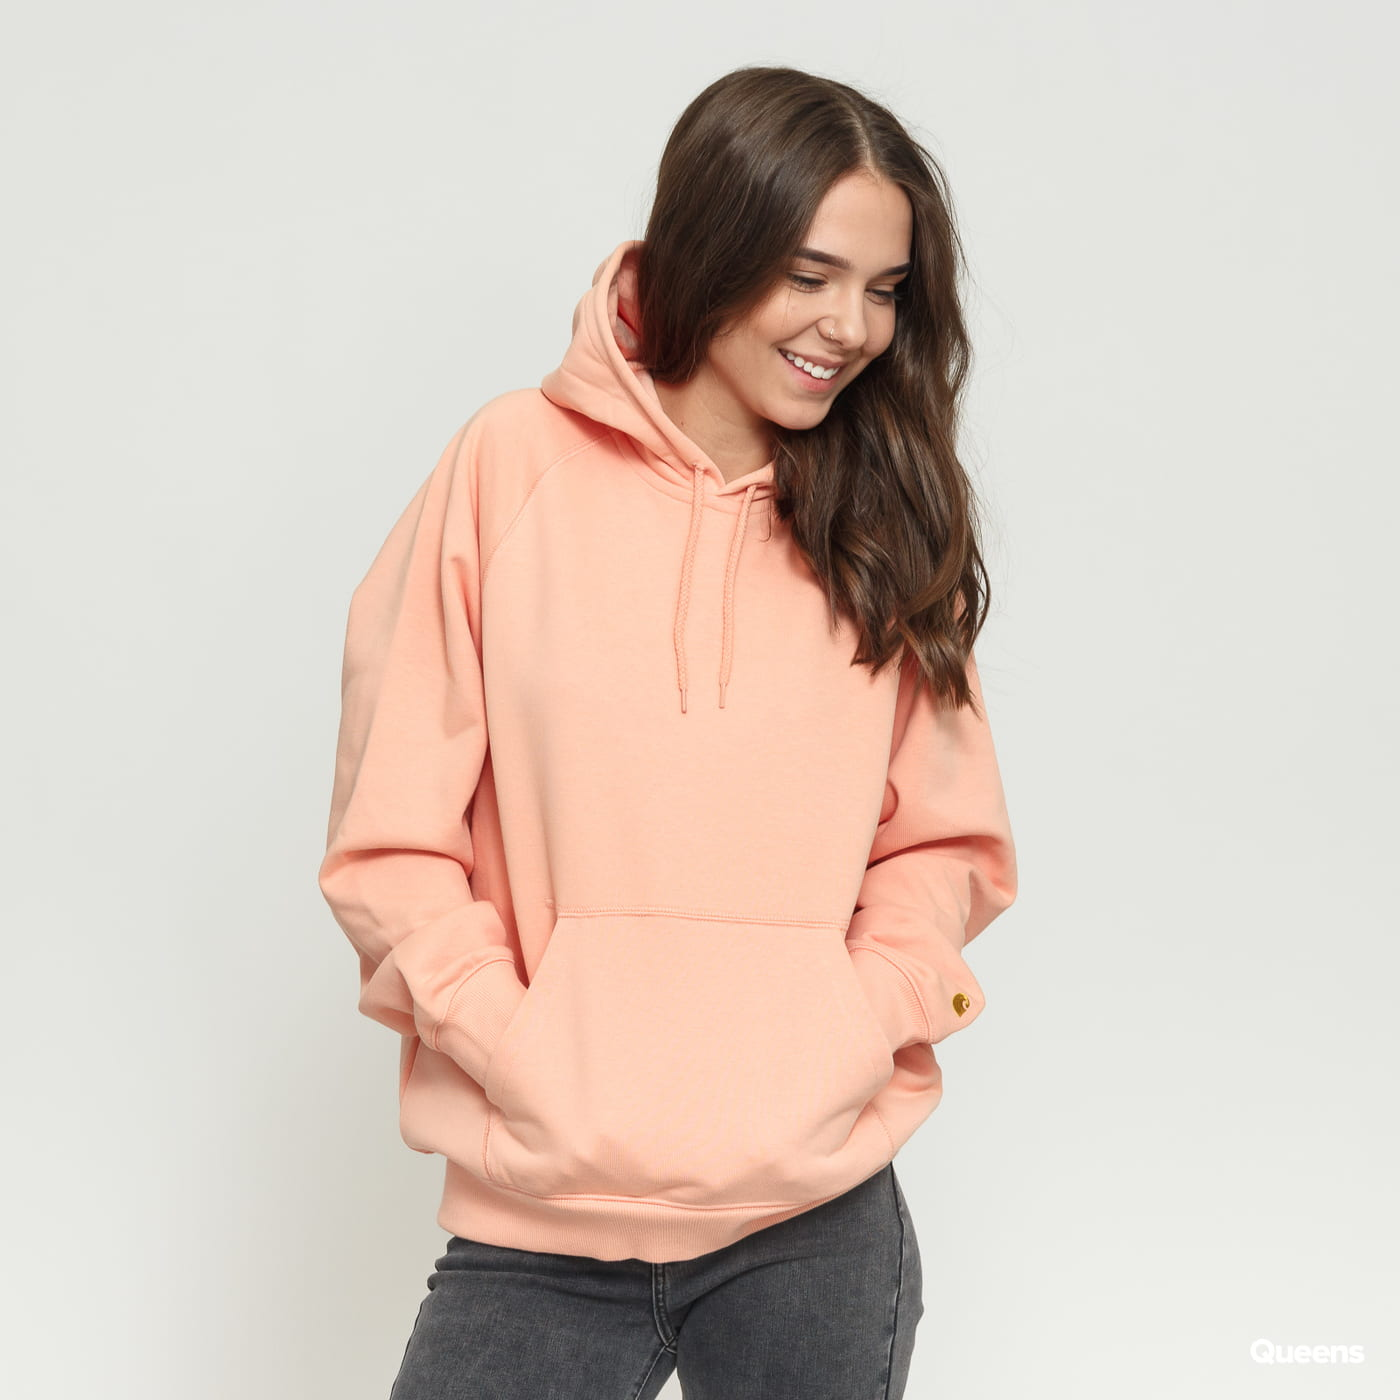 official supplier hot product clearance sale Carhartt WIP W' Hooded Chase Sweat light orange